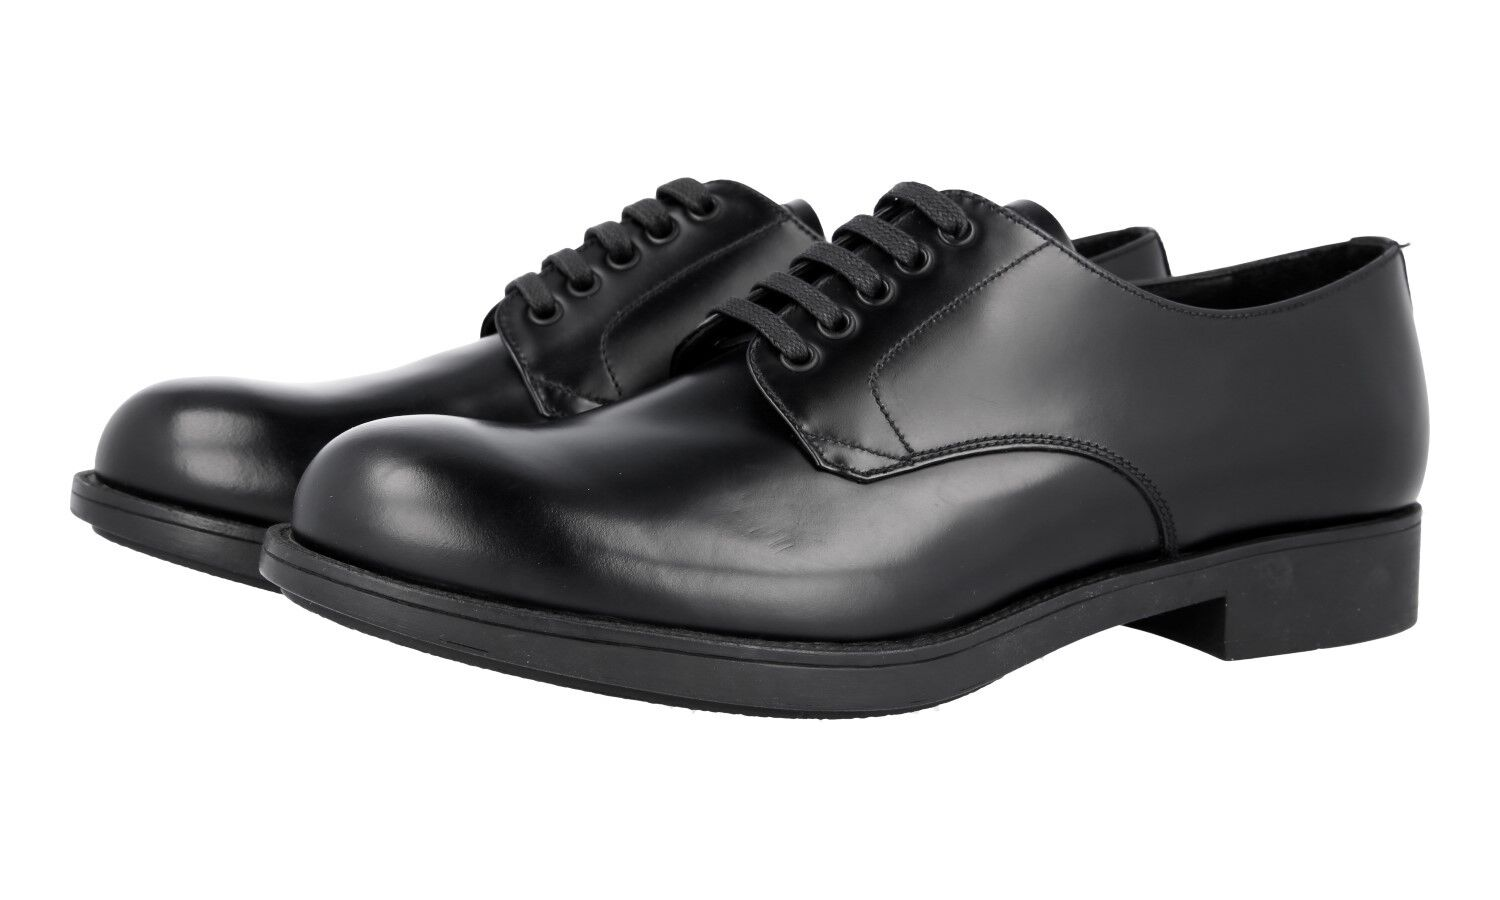 AUTH LUXURY PRADA DERBY BUSINESS SHOES 2EE212 BLACK NEW 6 40 40,5